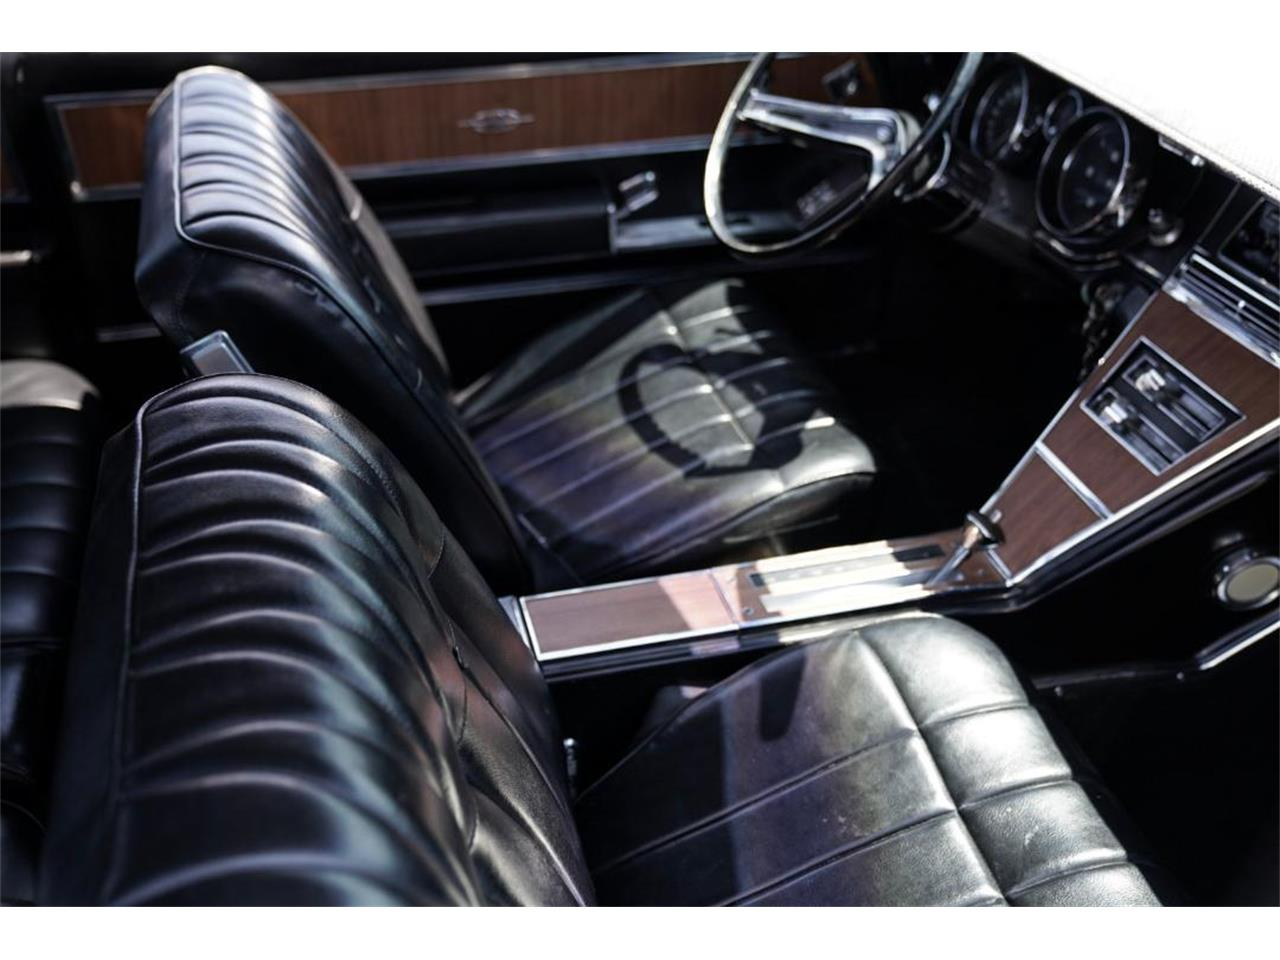 Large Picture of 1965 Buick Riviera located in California - $27,499.00 Offered by a Private Seller - QHFP